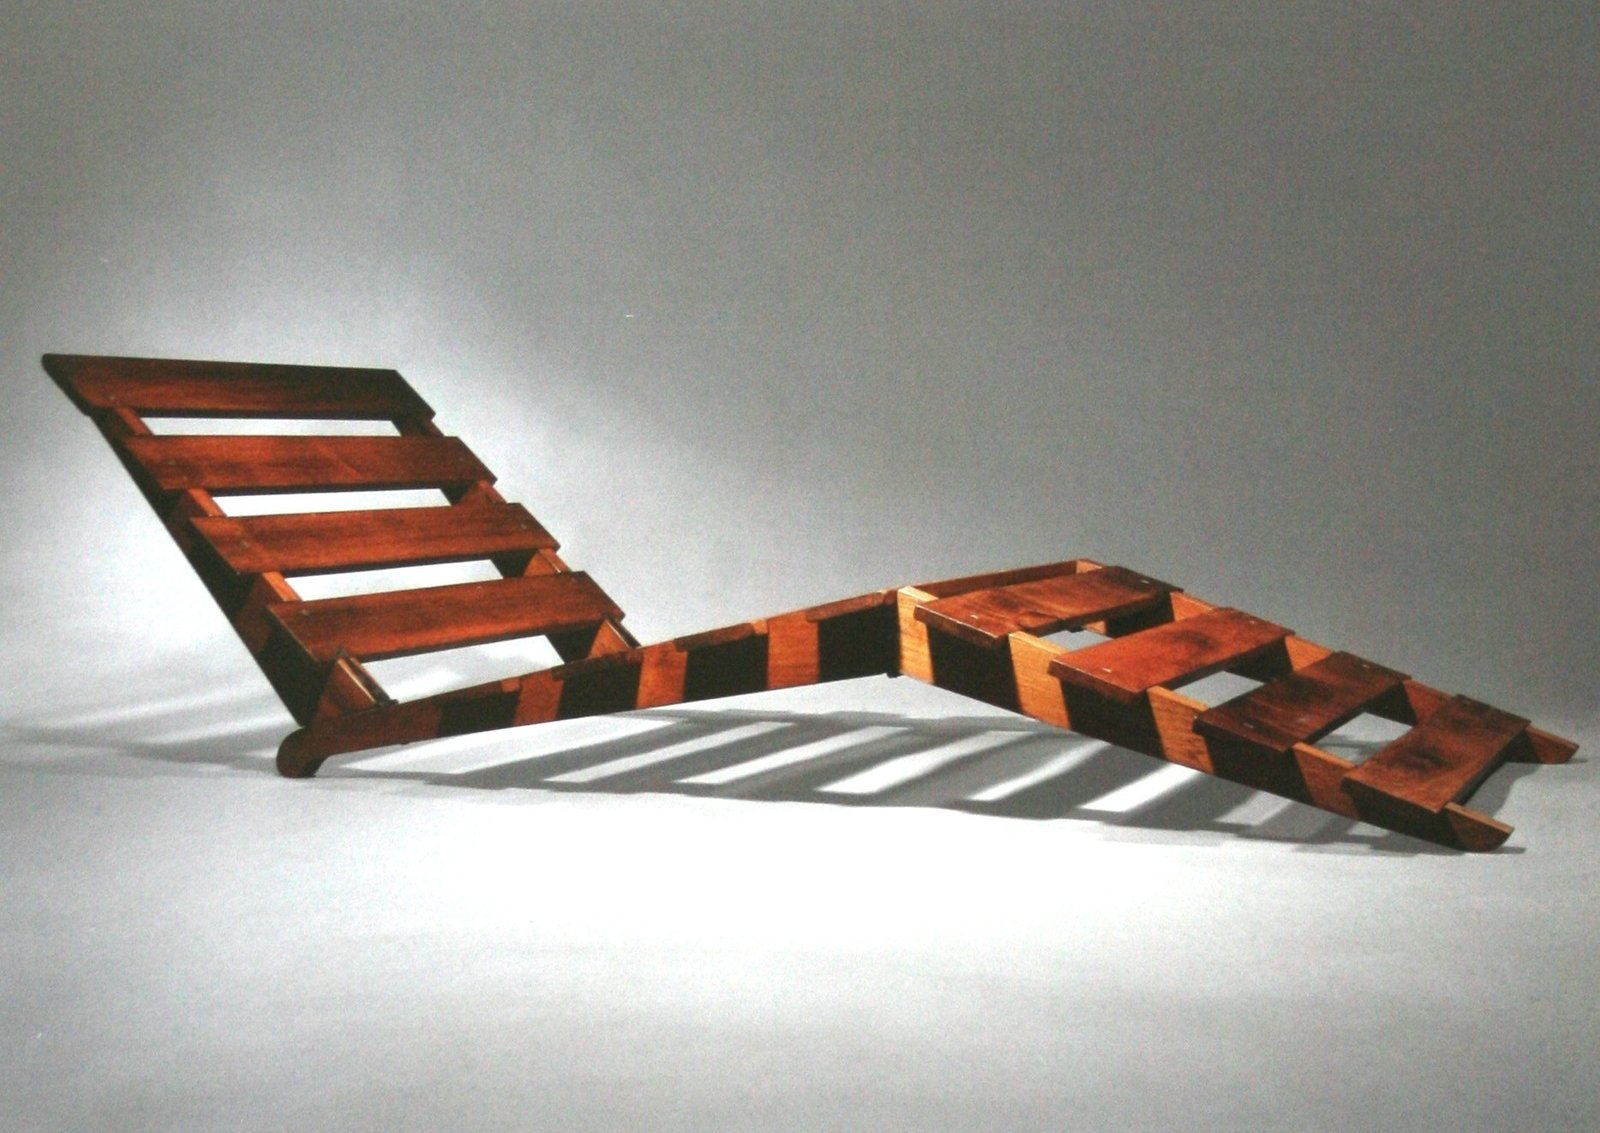 Folding wood chaise longue, 1939  Independent works of Charlotte Perriand by Chris Deam